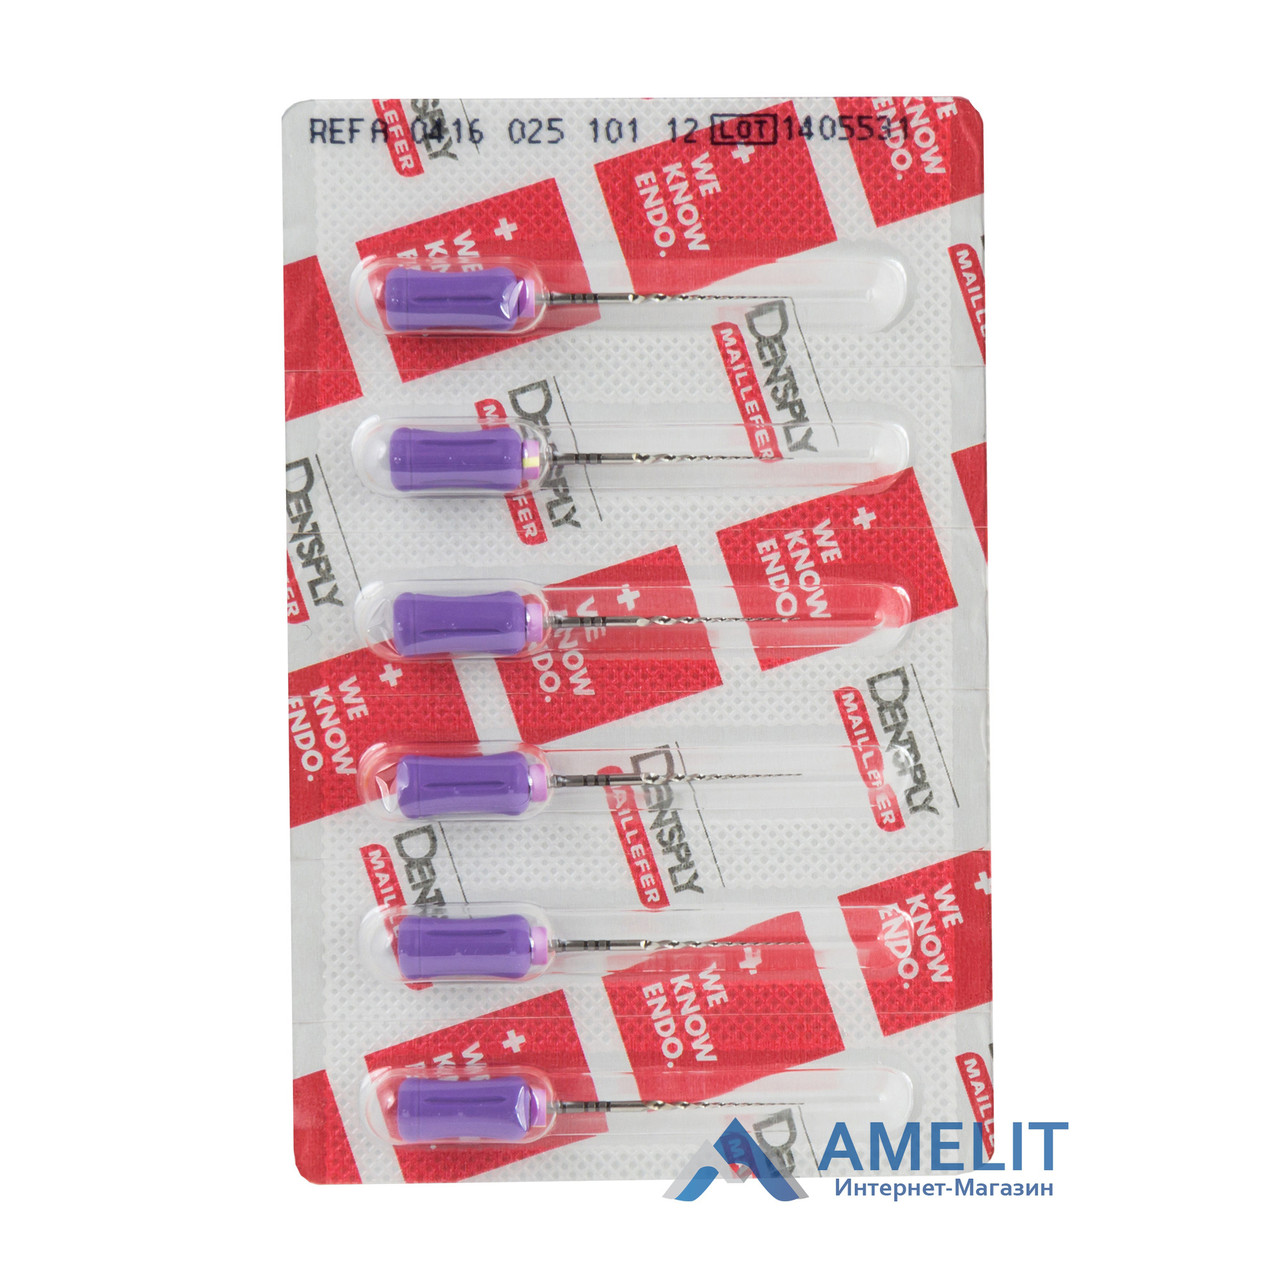 ПроТейпер ручной F1 (ProTaper for hand use, Dentsply Maillefer), 6 шт./уп.